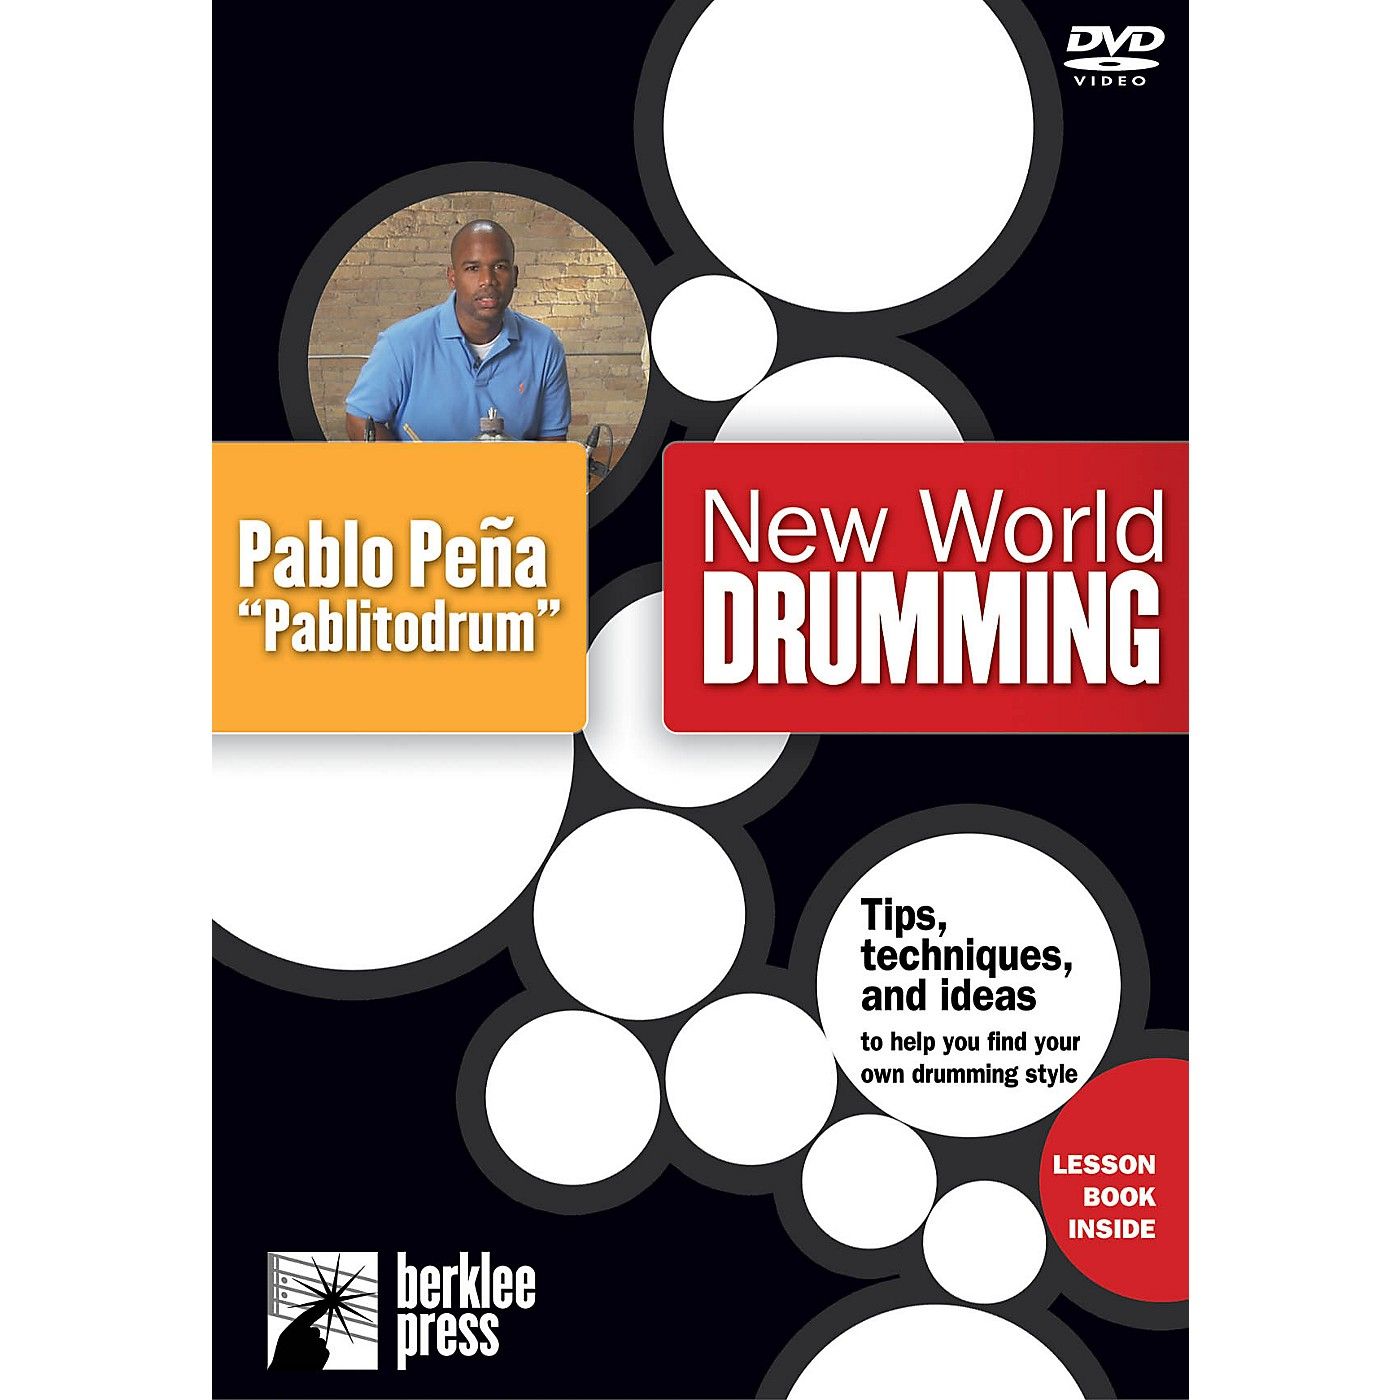 Berklee Press New World Drumming Instructional/Drum/DVD Series DVD Performed by Pablo Peña